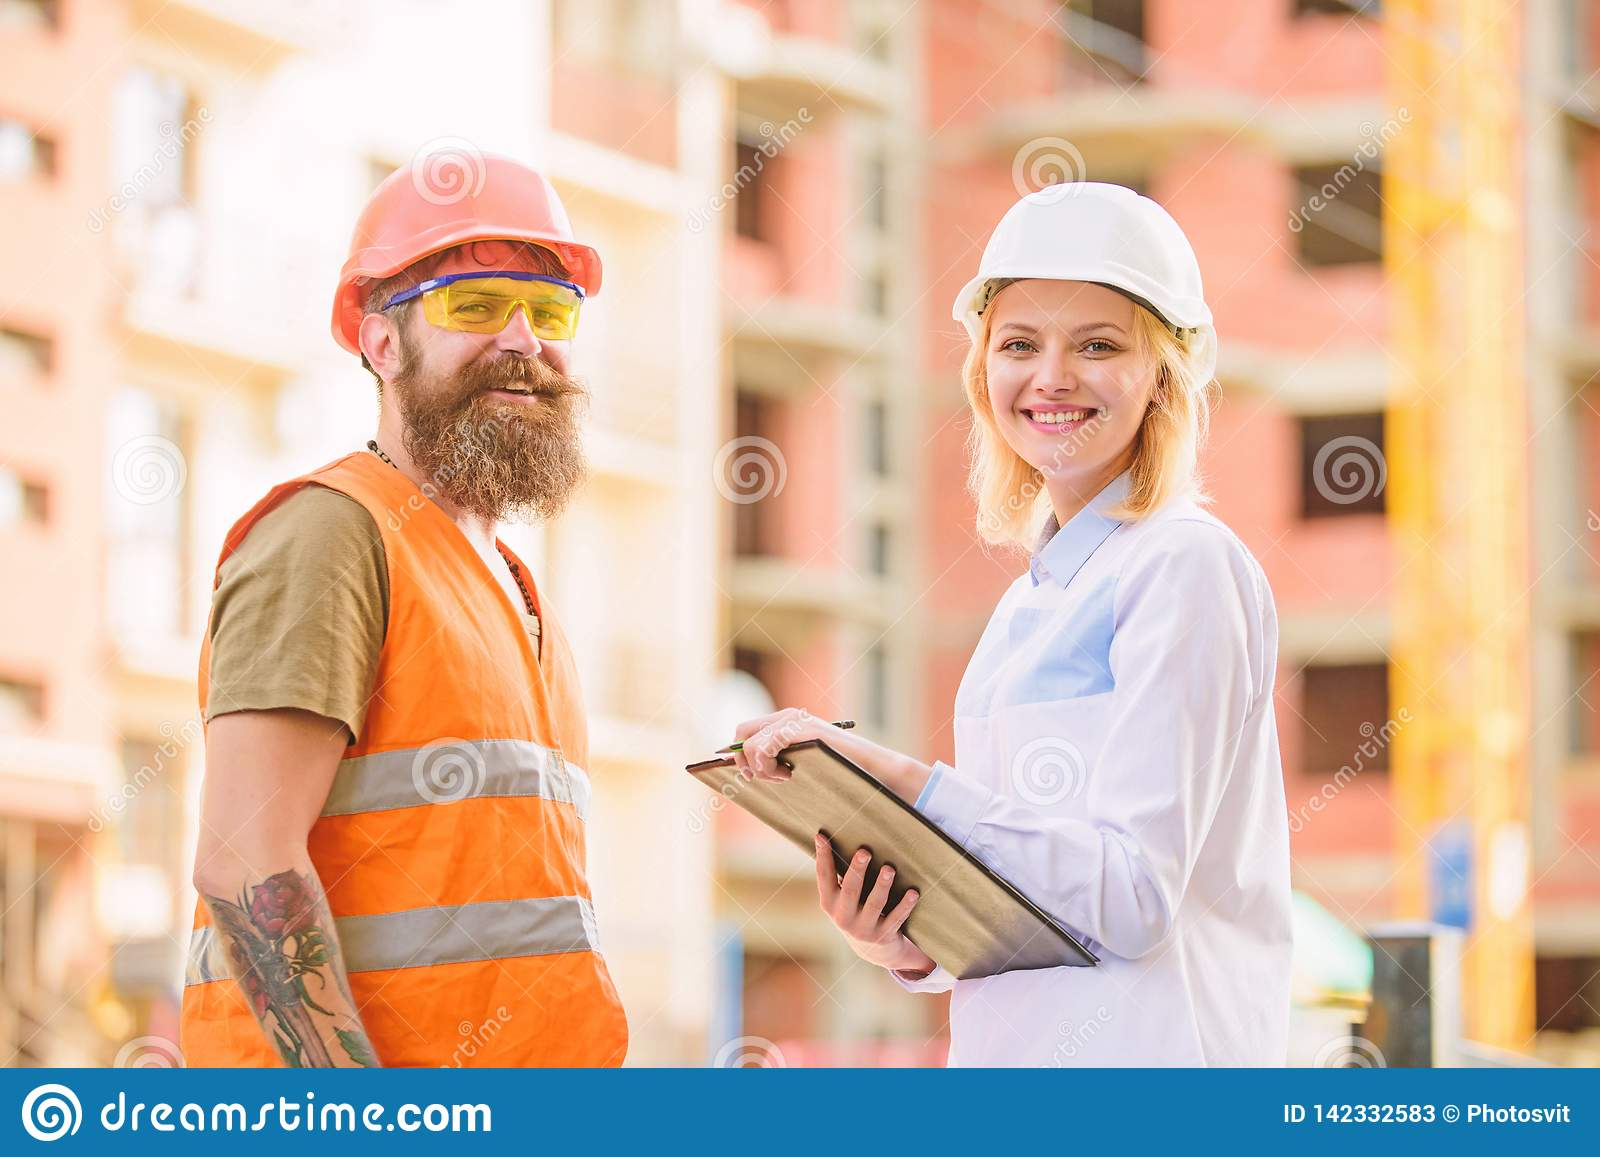 Successful deal concept. Purchase of building materials. Construction industry. Foreman established supply of building